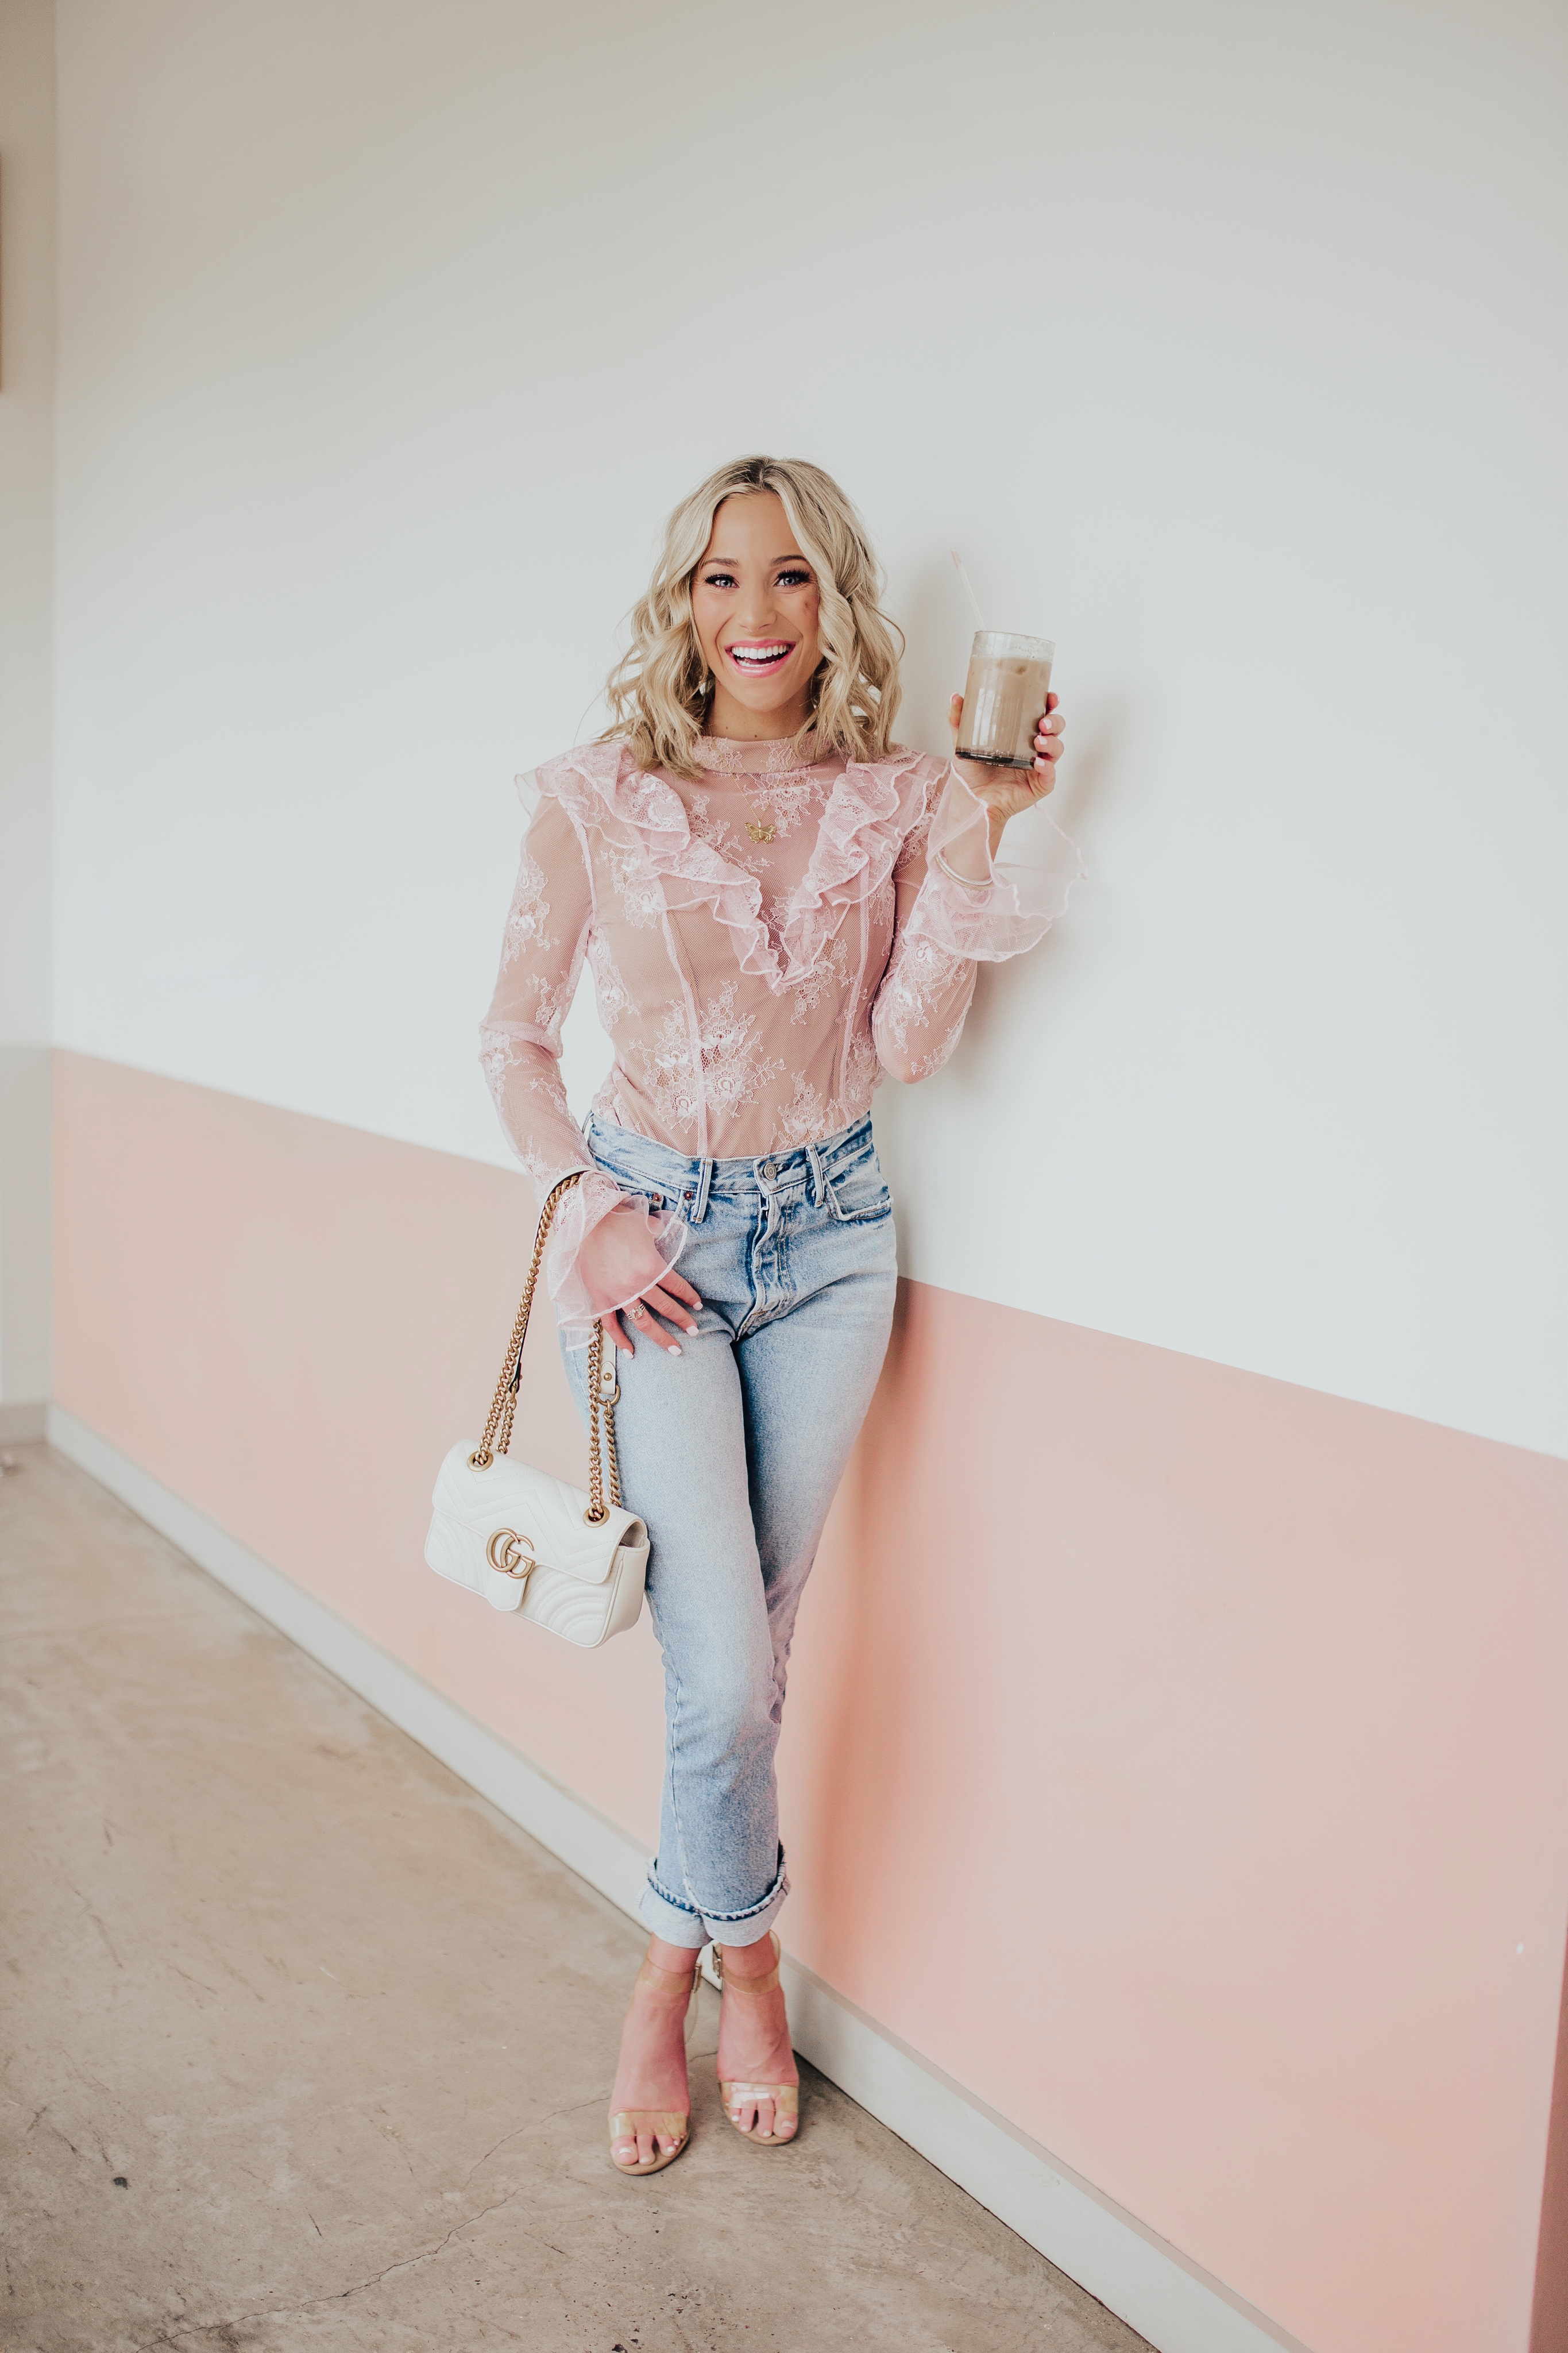 Revolve - MAJORELLE Zamora Top in Blush Pink 4